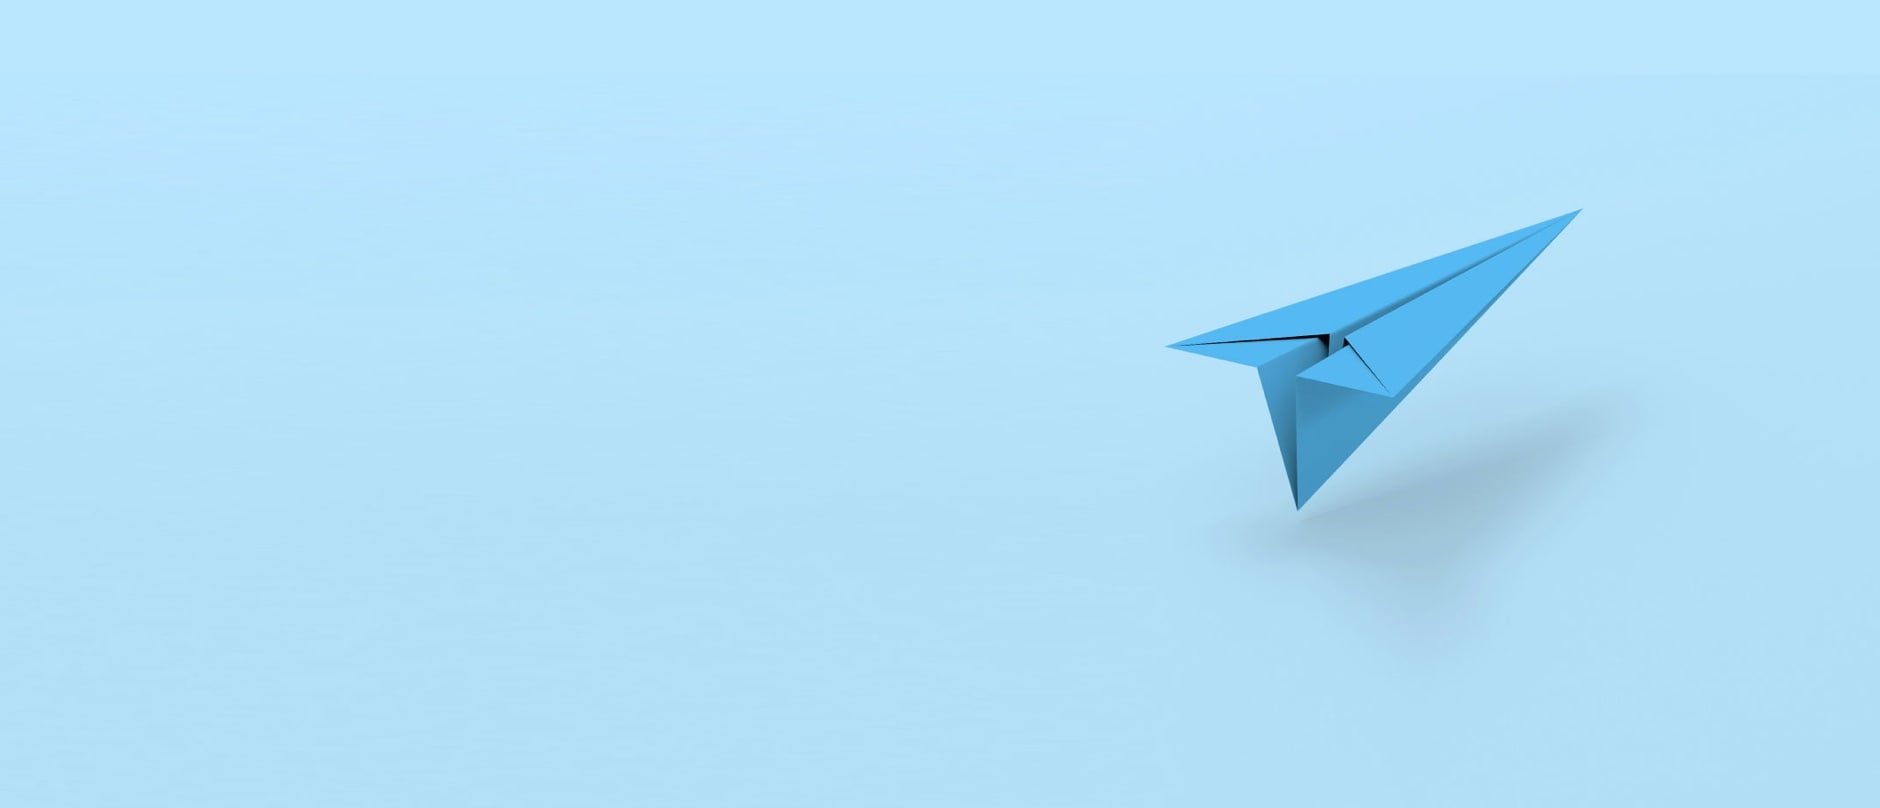 blue paper airplane on blue back drop